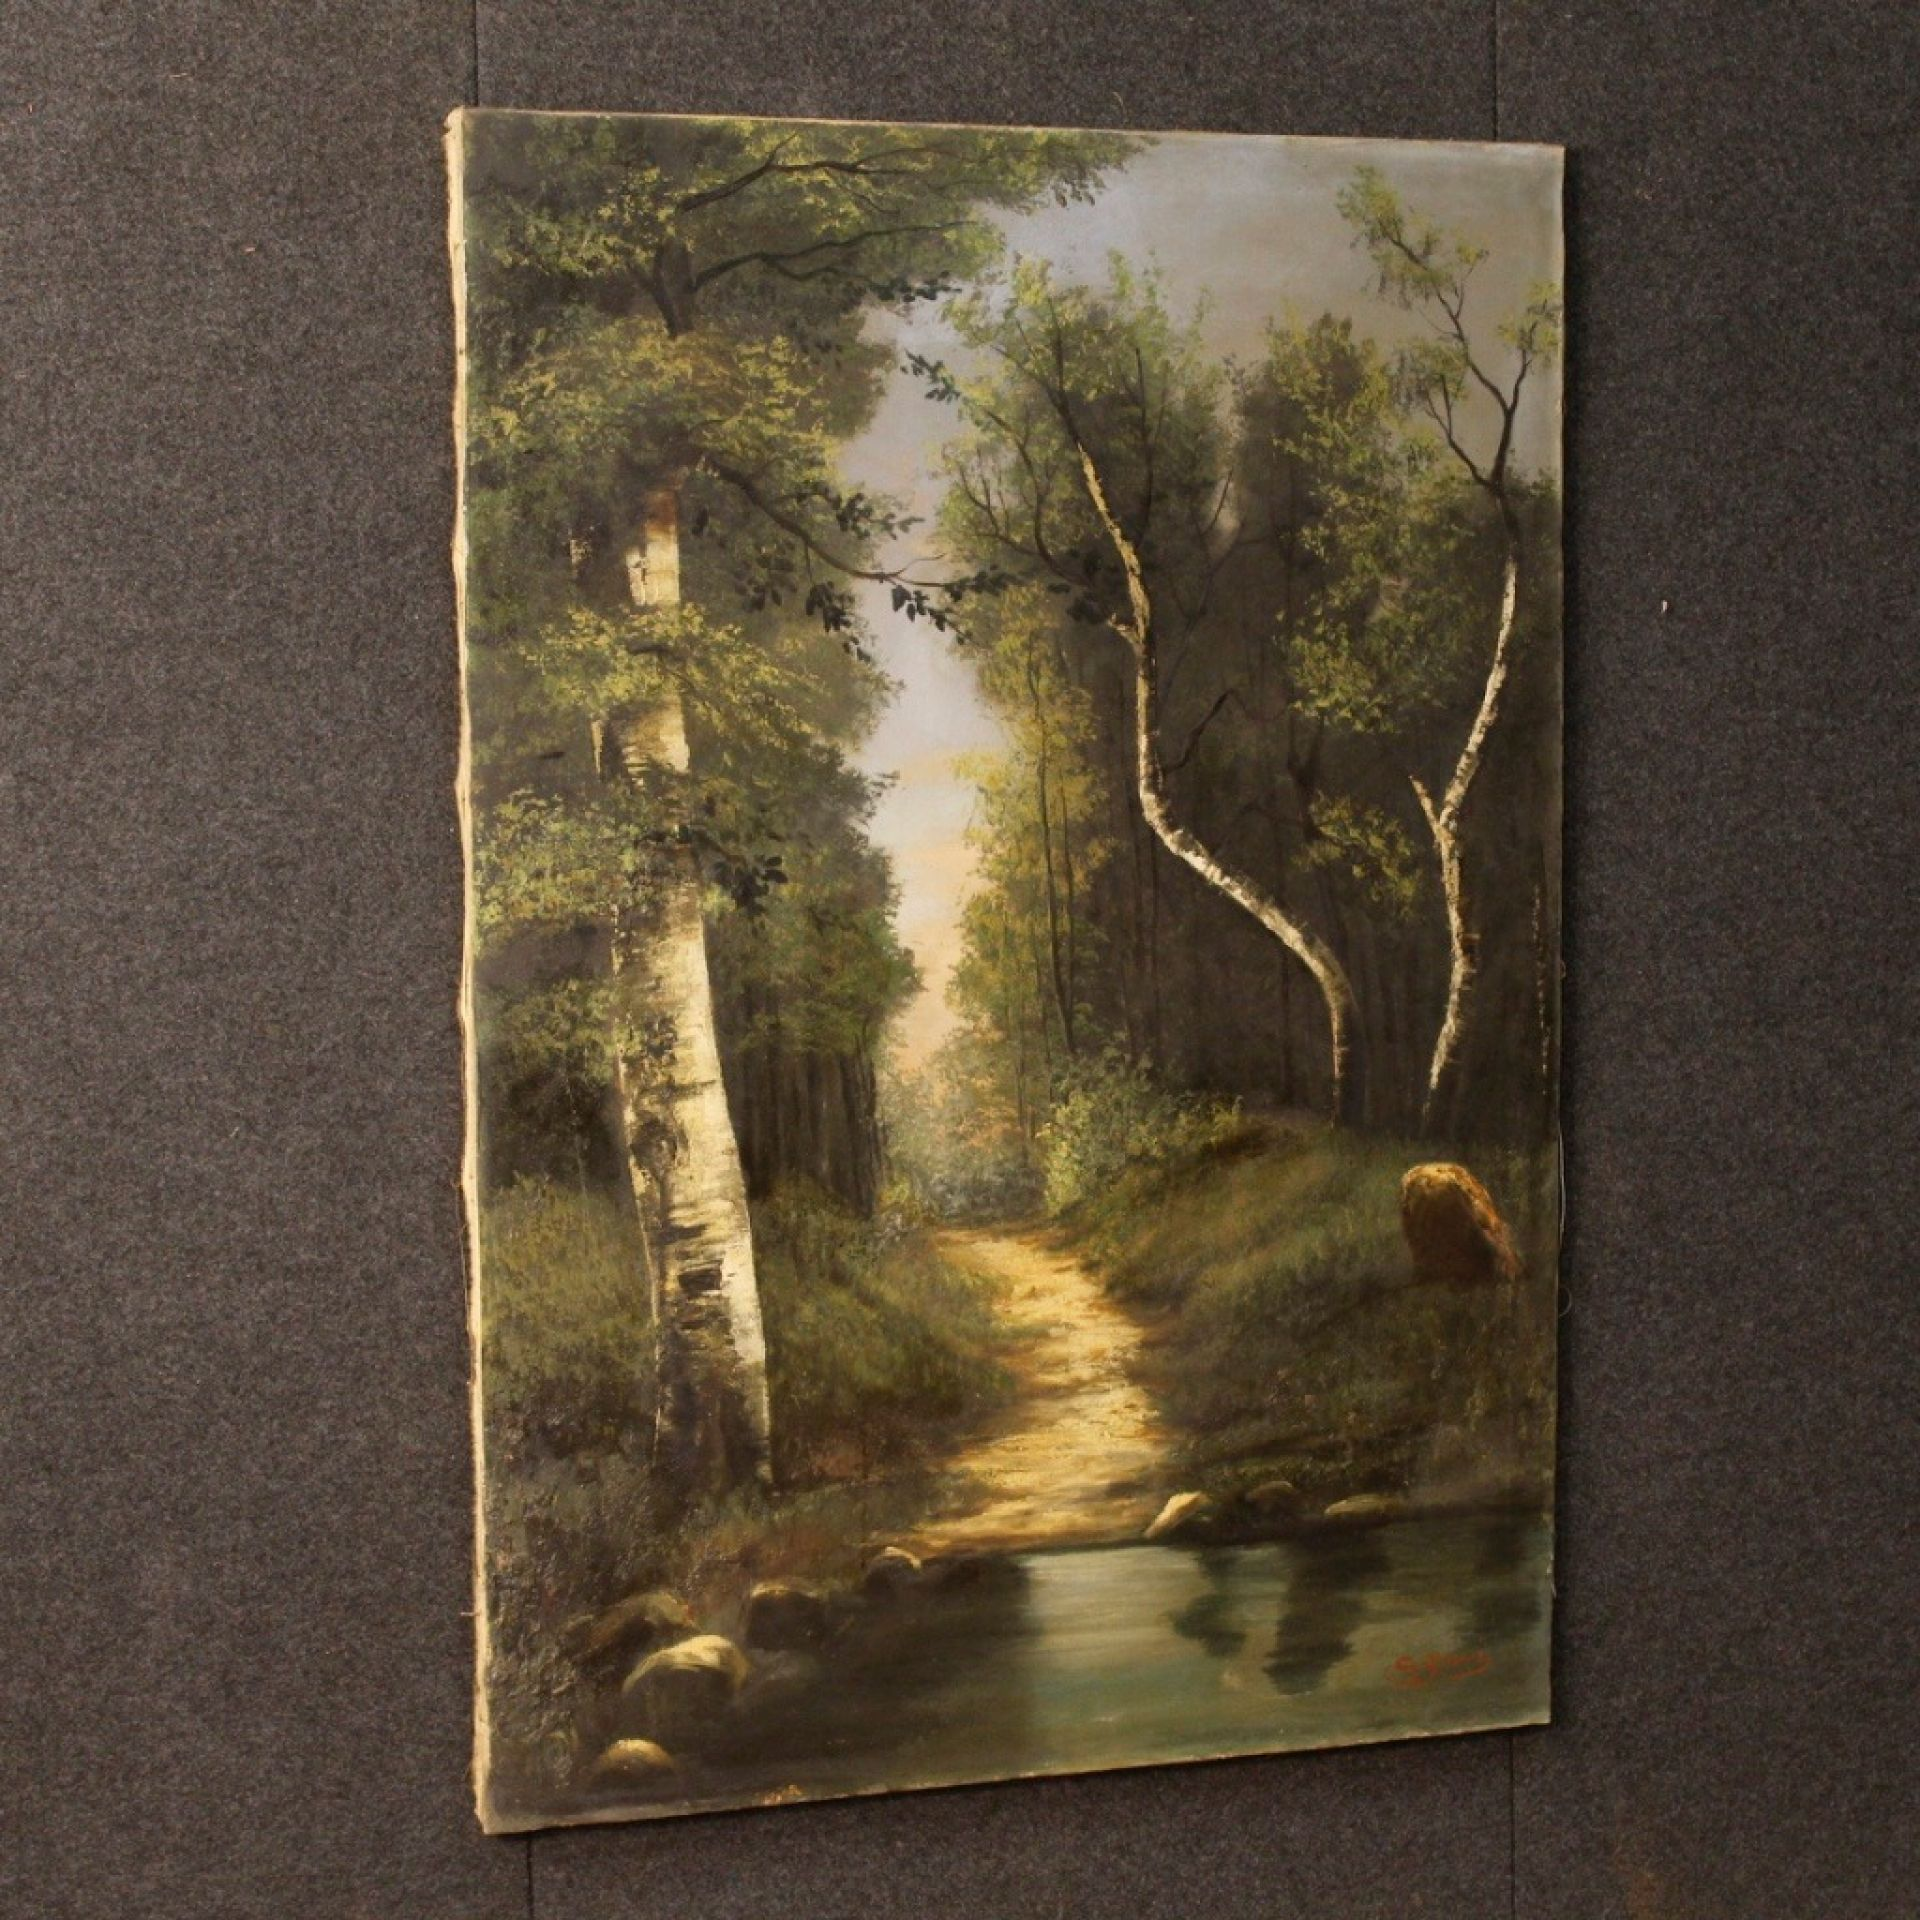 20th Century Oil on Canvas Italian Impressionist Style Signed Landscape Painting